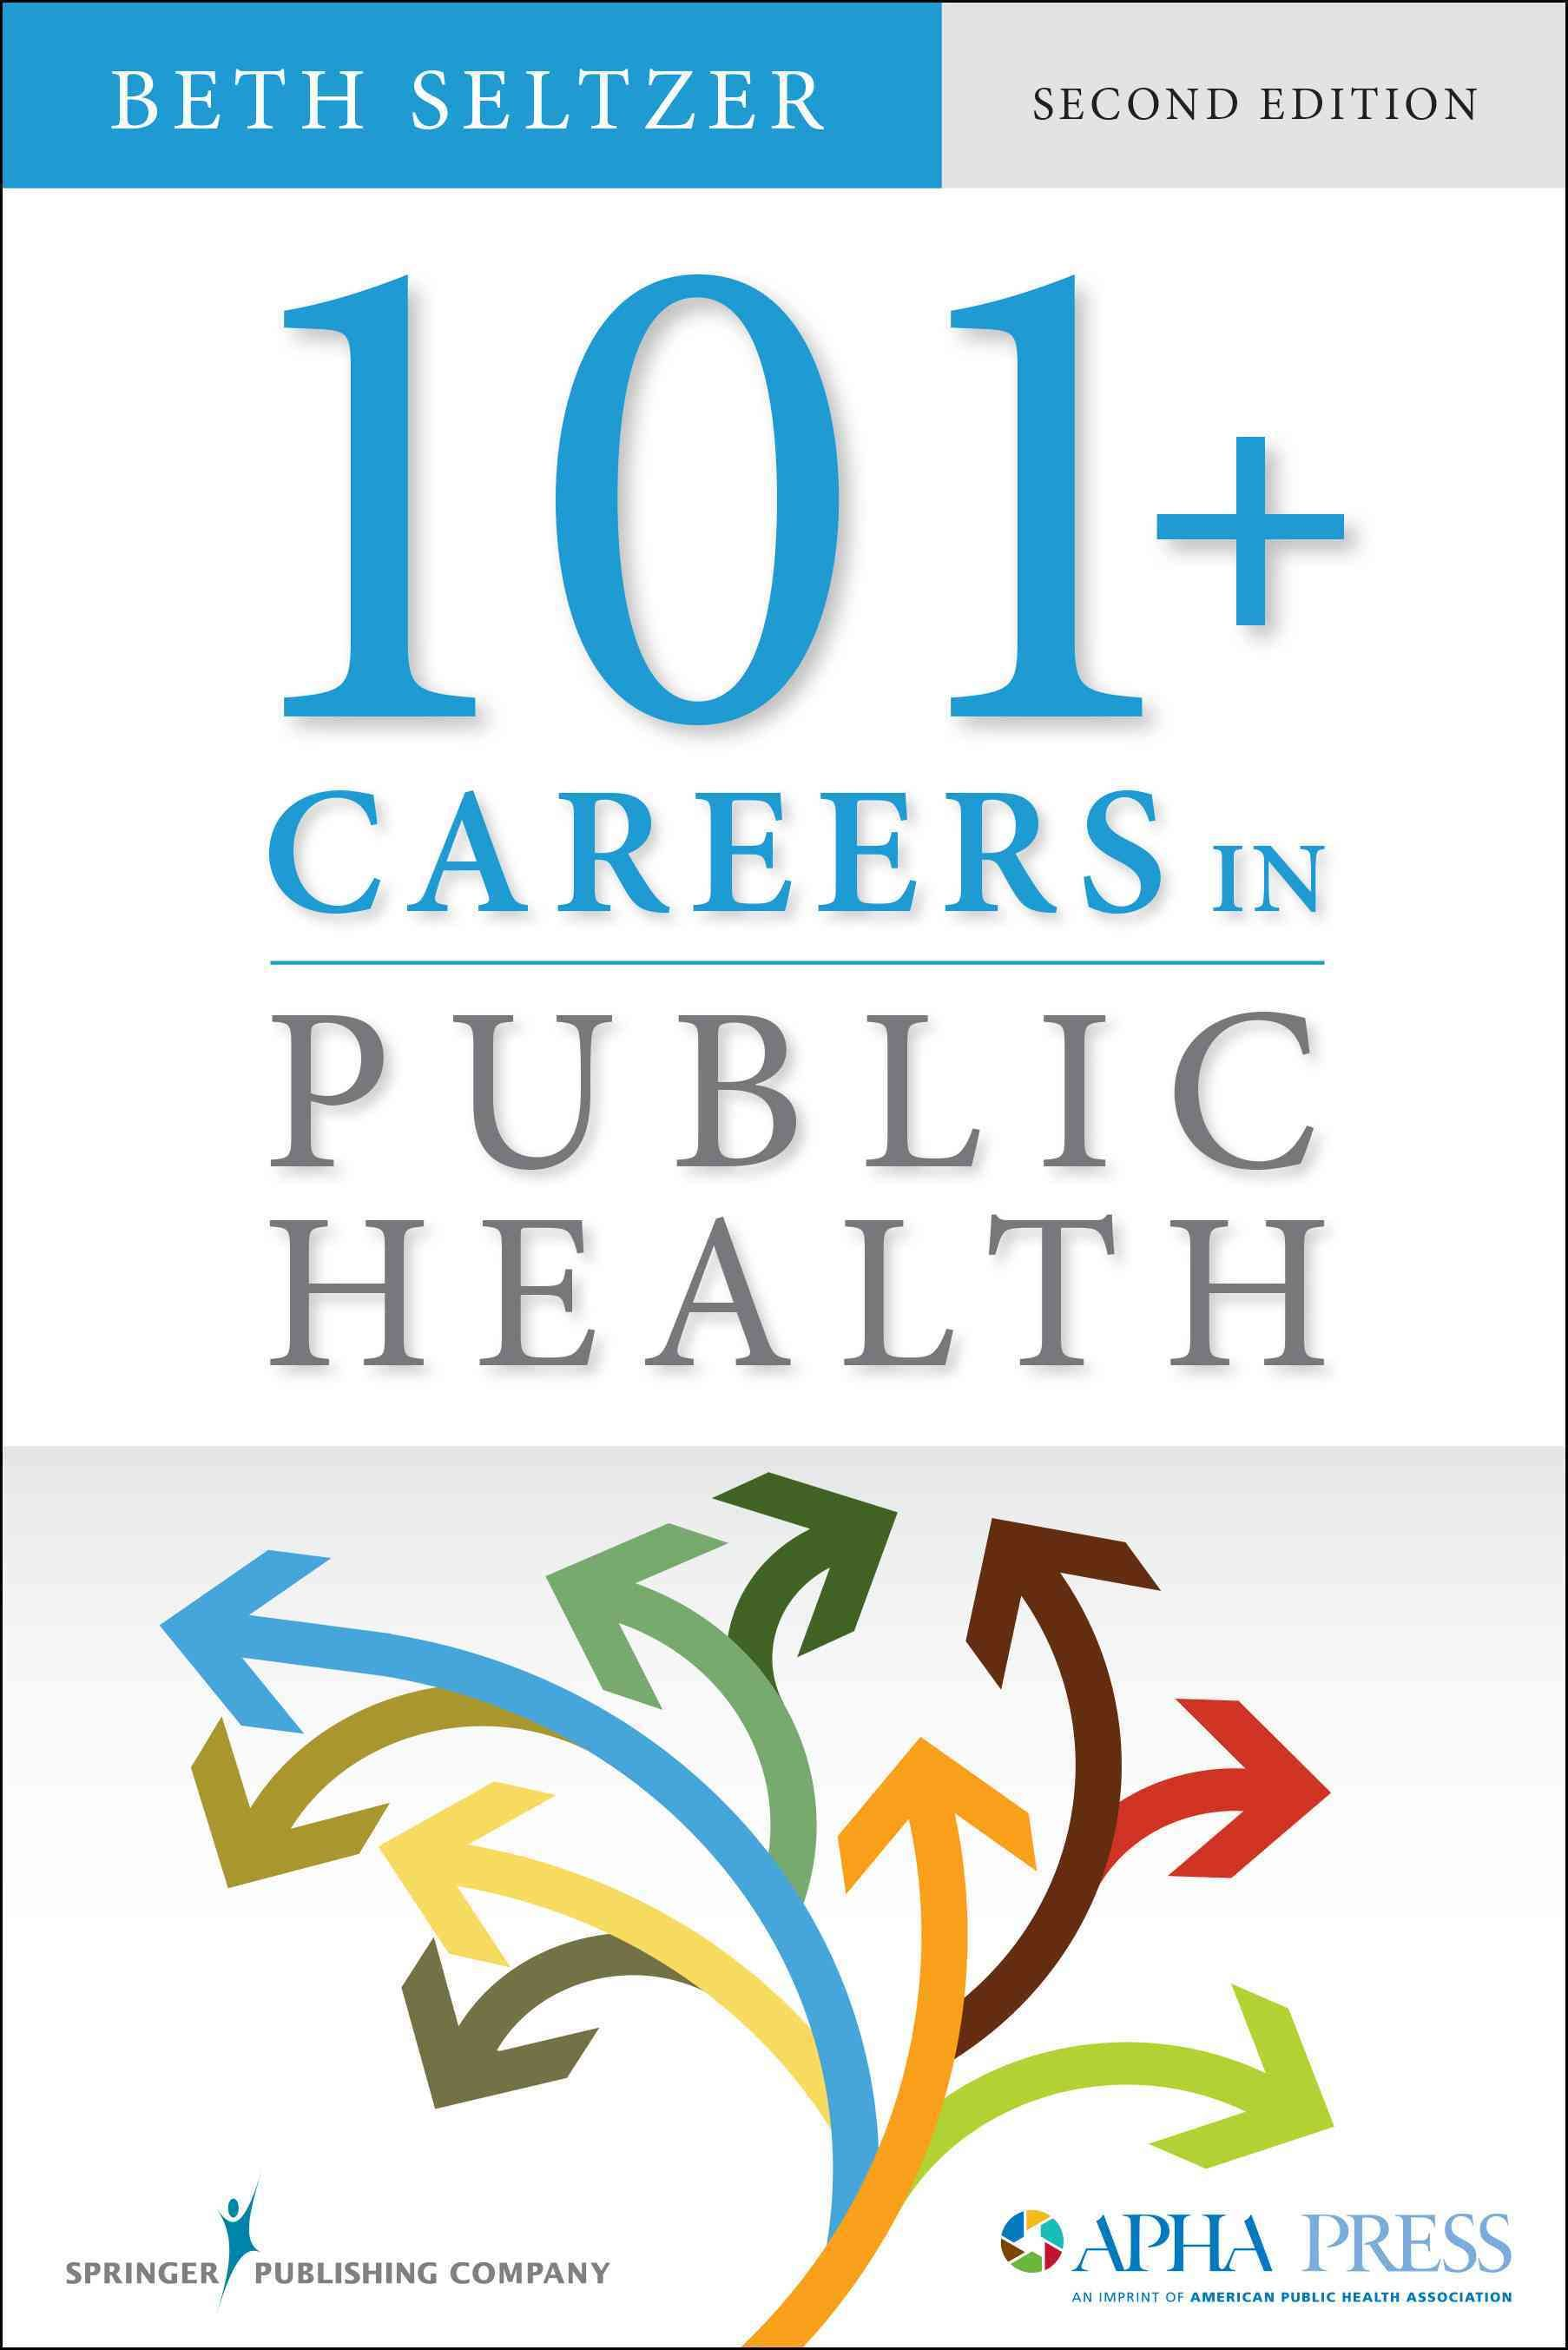 In just the past few years, interest in public health